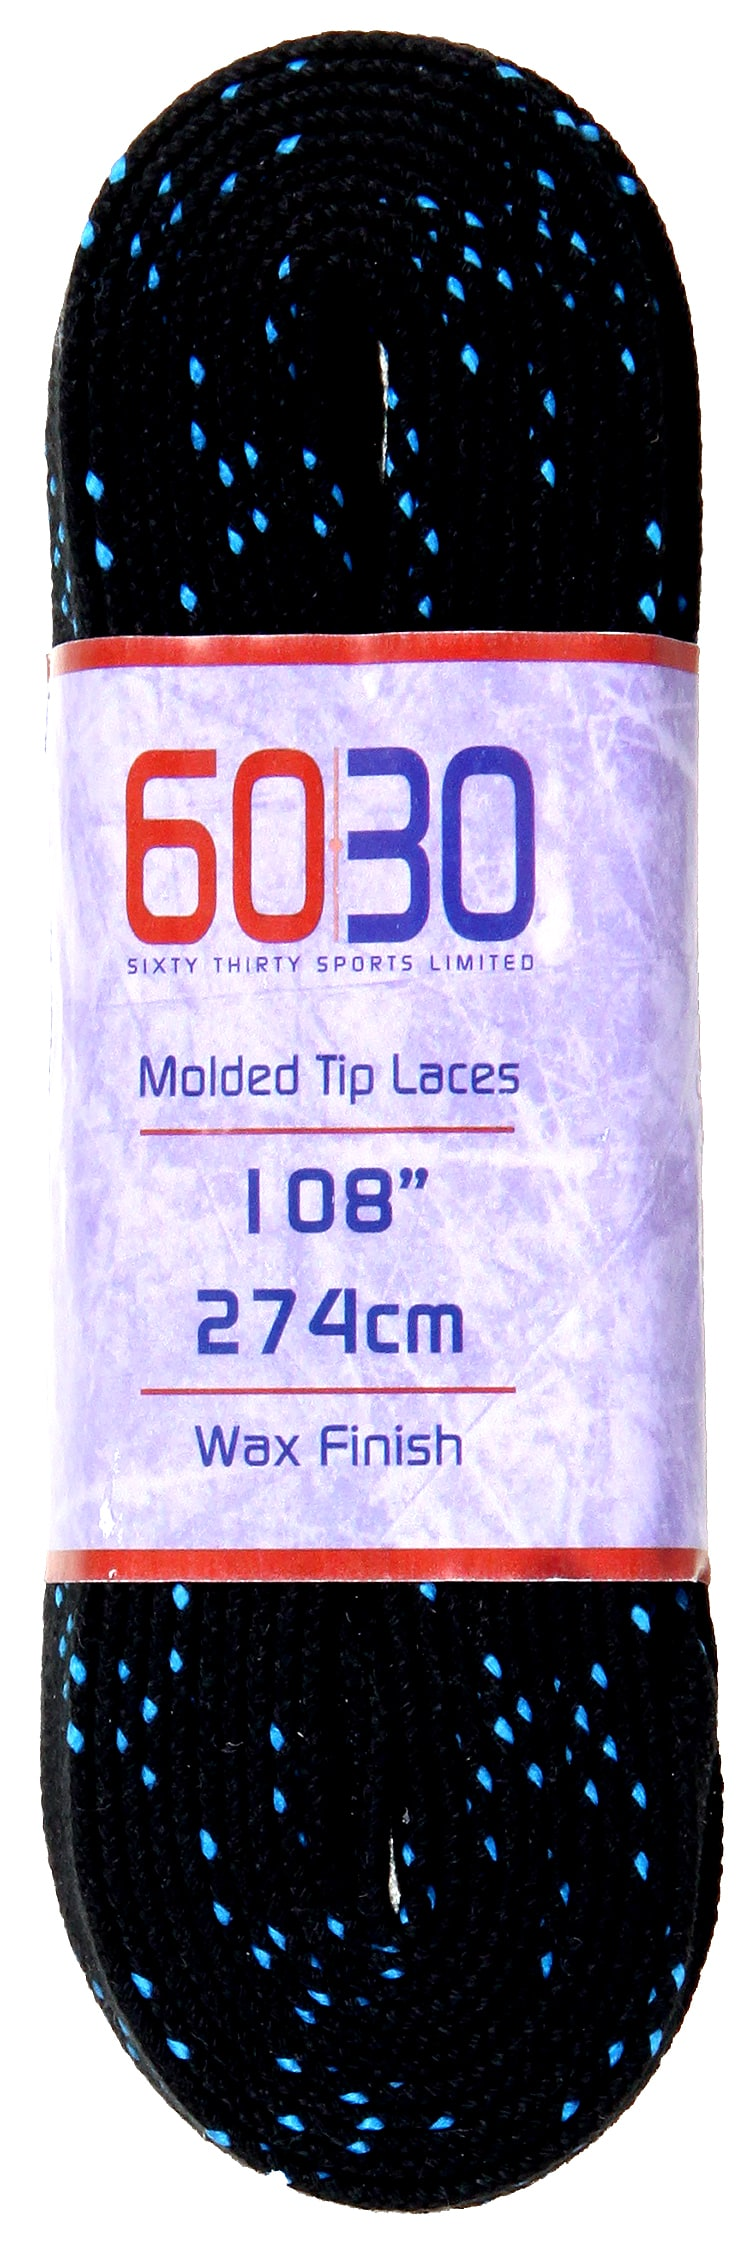 Image of 6030 Waxed Skate Laces Black/Blue